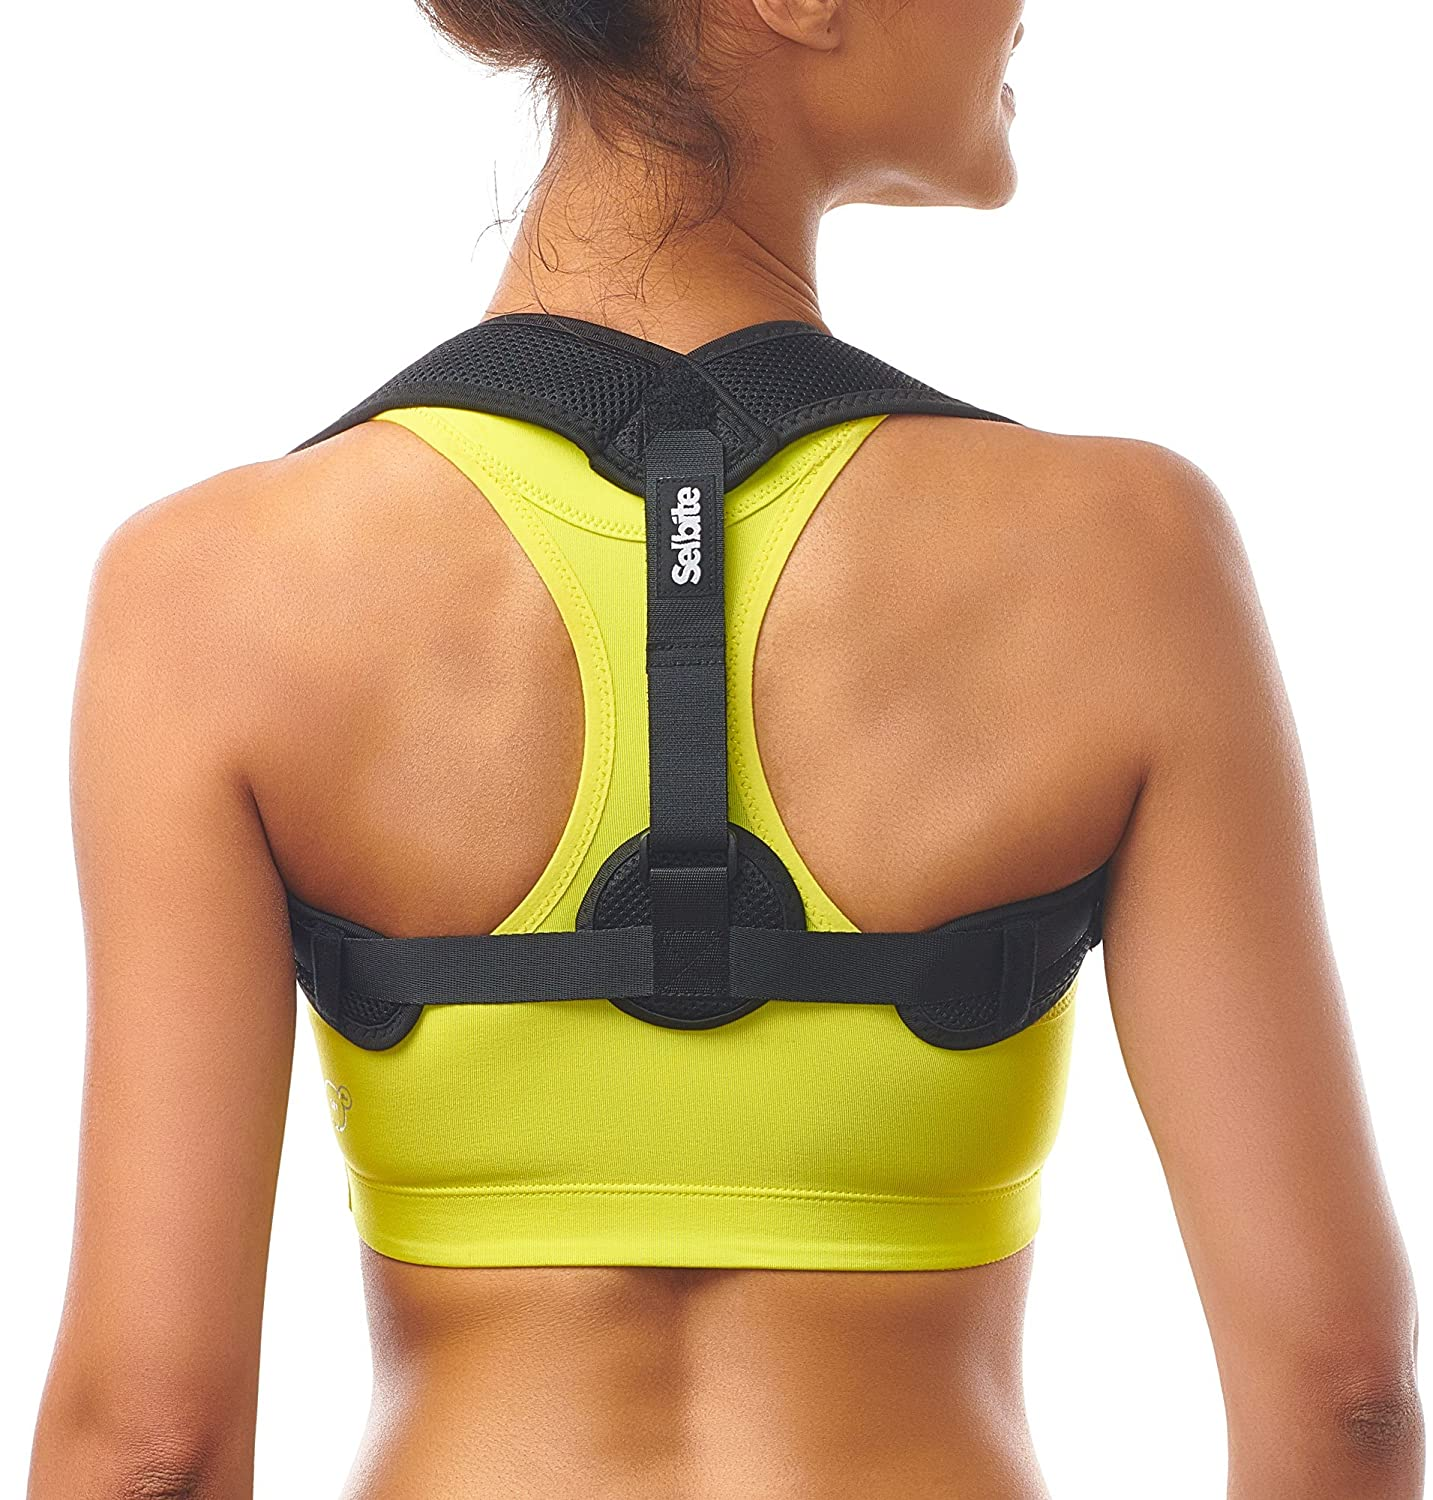 31ebd92c031 Amazon.com  Posture Corrector for Women Men - Posture Brace - Adjustable  Back Straightener - Discreet Back Brace for Upper Back Pain Relief -  Comfortable ...